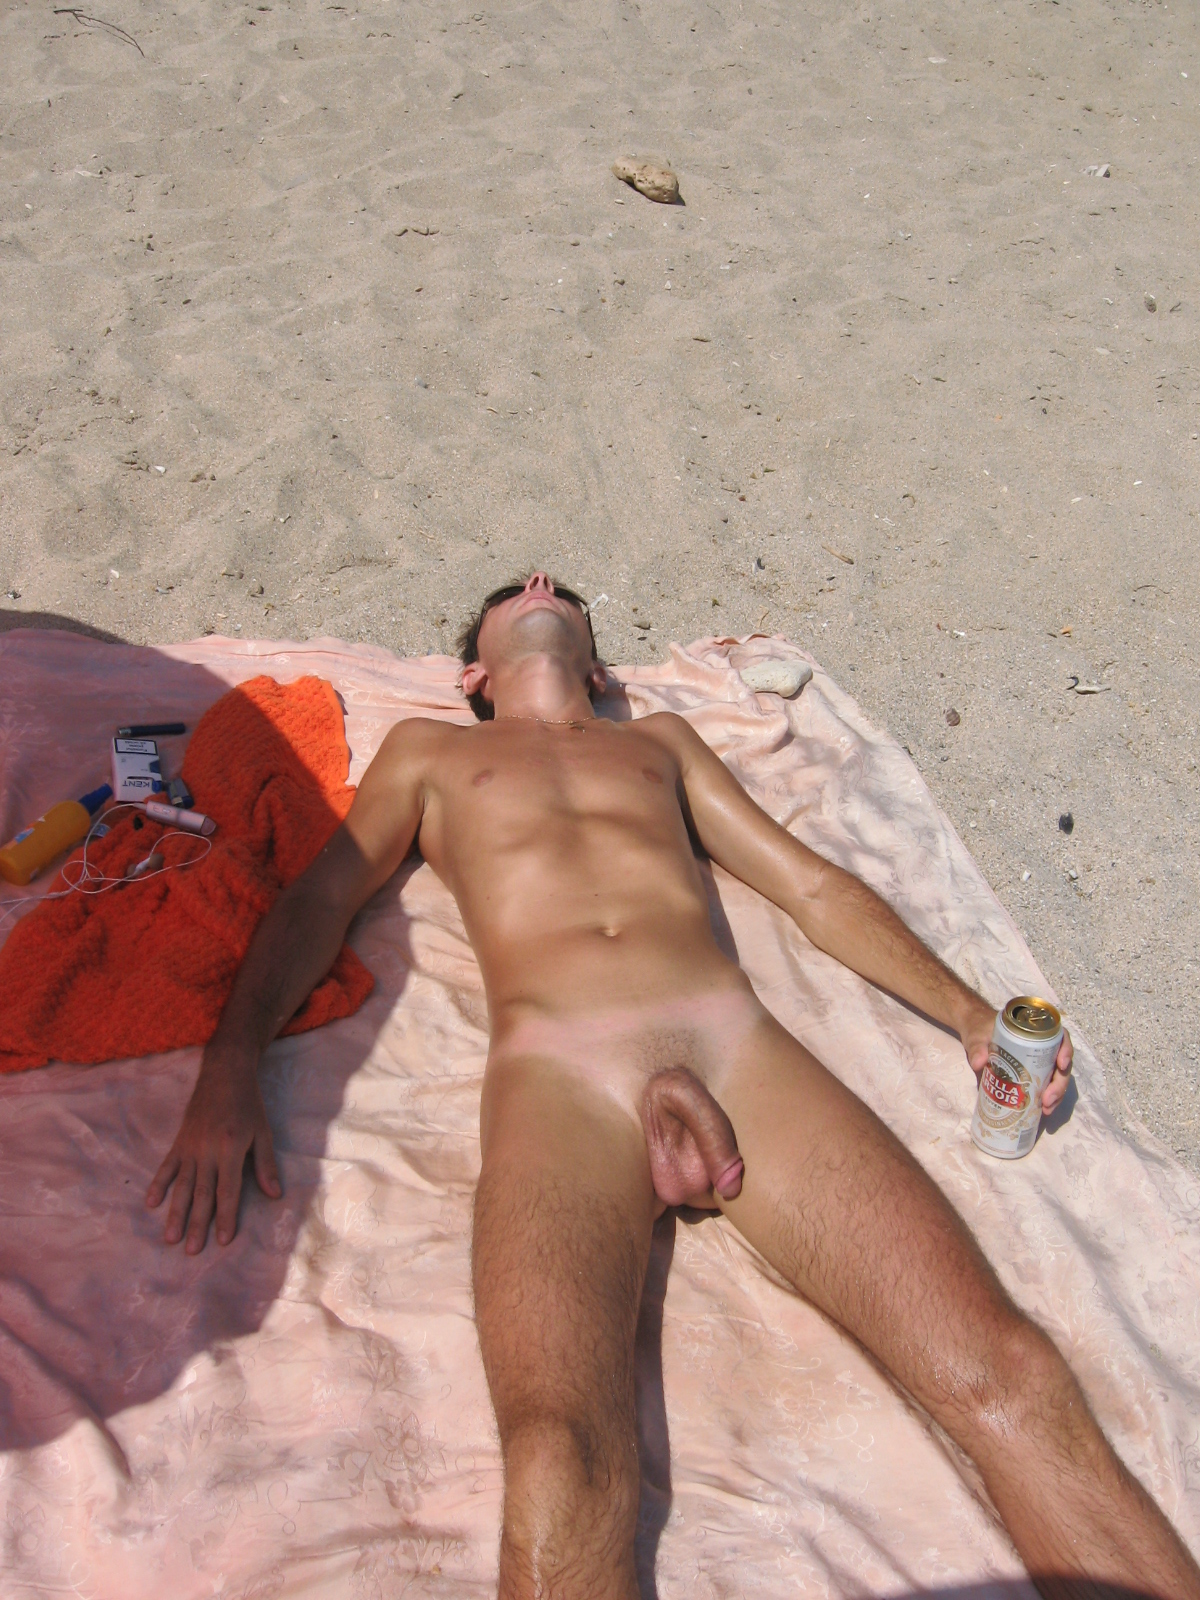 sun bath in beach nude